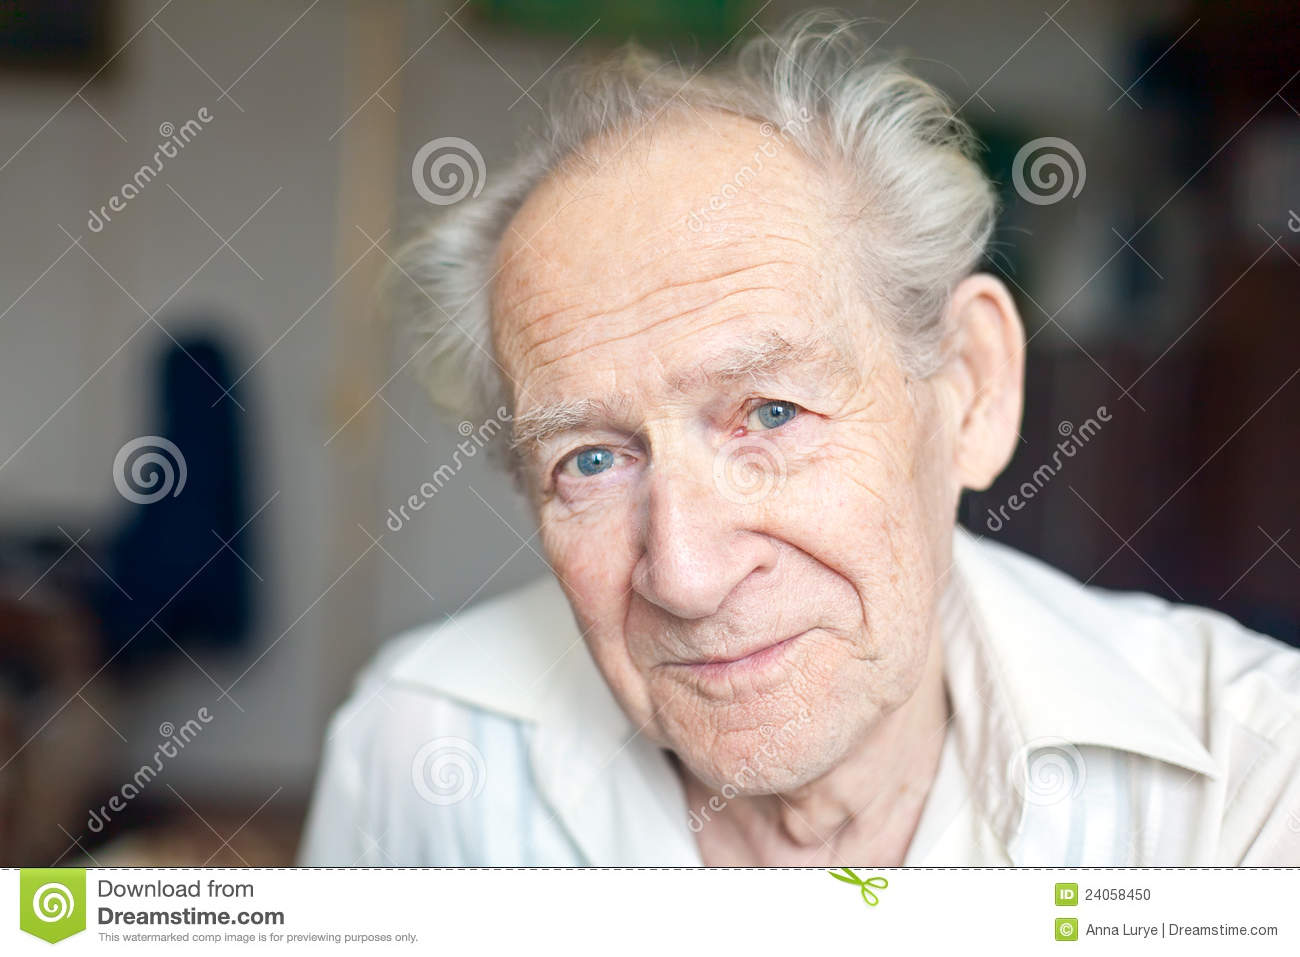 Face portrait of a cheerful smiling senior man Old Man Face Smiling